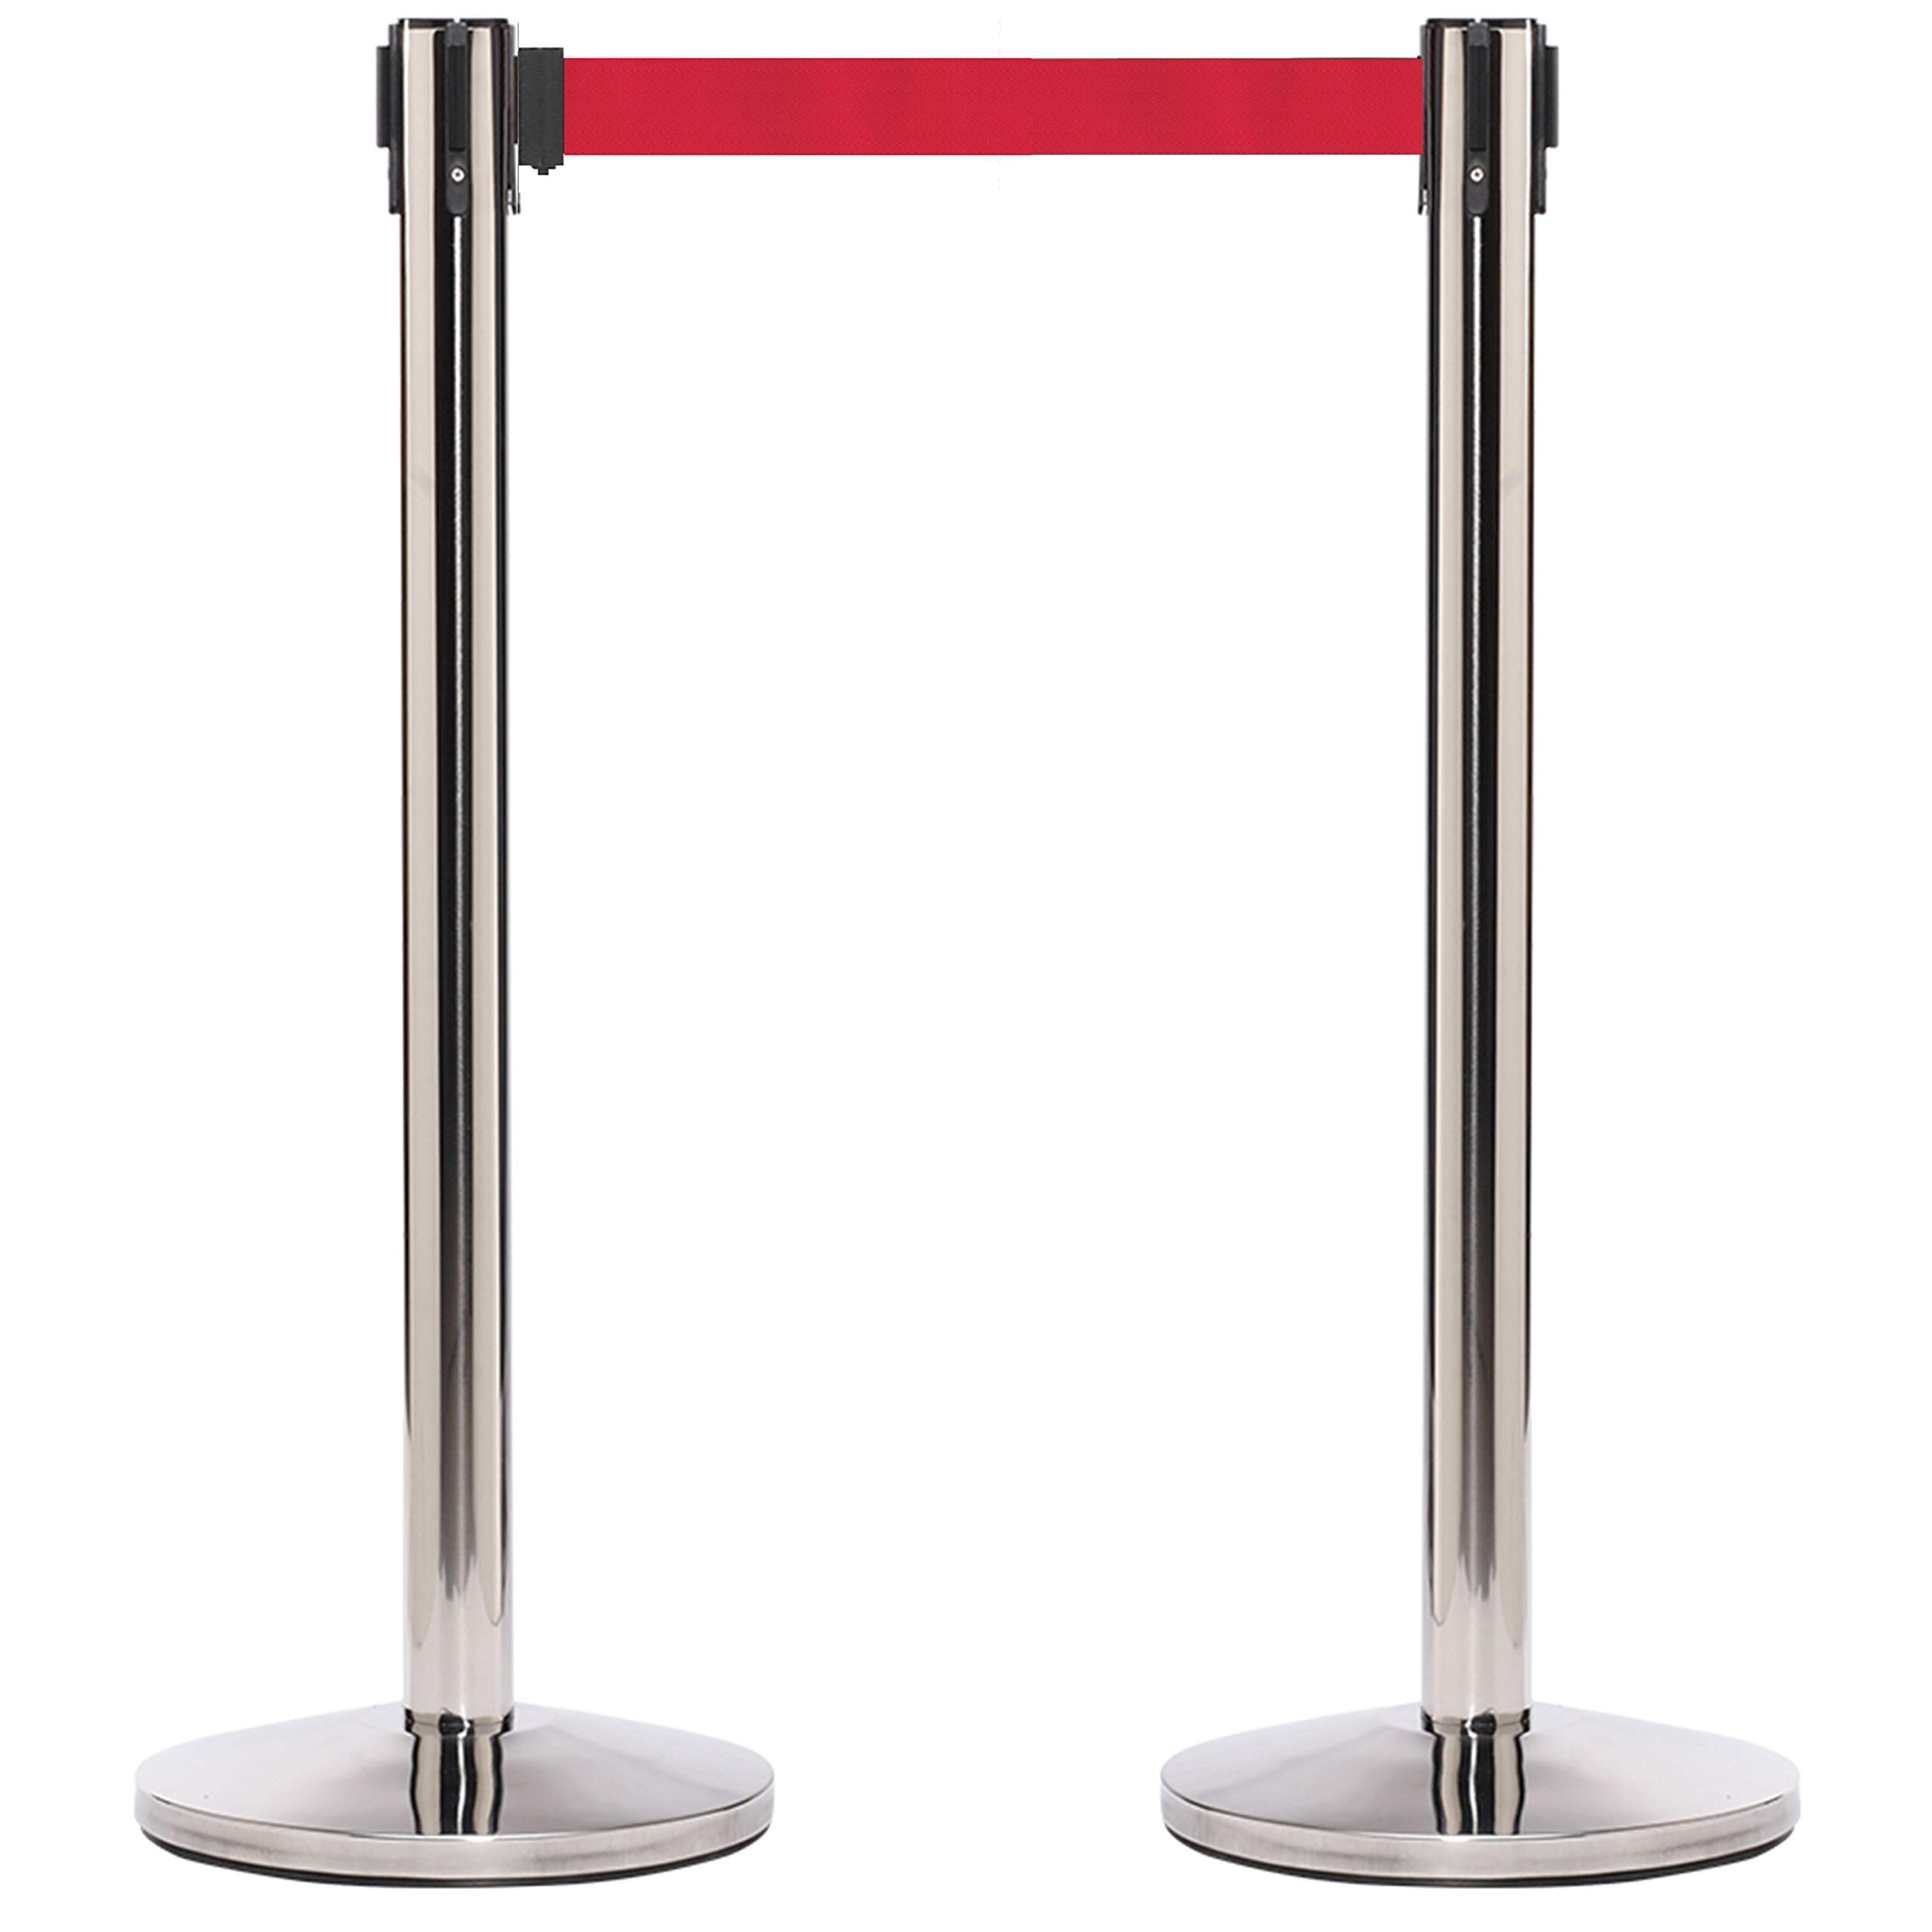 CCW Series RBB-100 Polished Stainless Steel Stanchion Retractable Belt Barrier with 12 Ft. Red Belt - Easy to Assemble, No Tools Required (Set of 2)